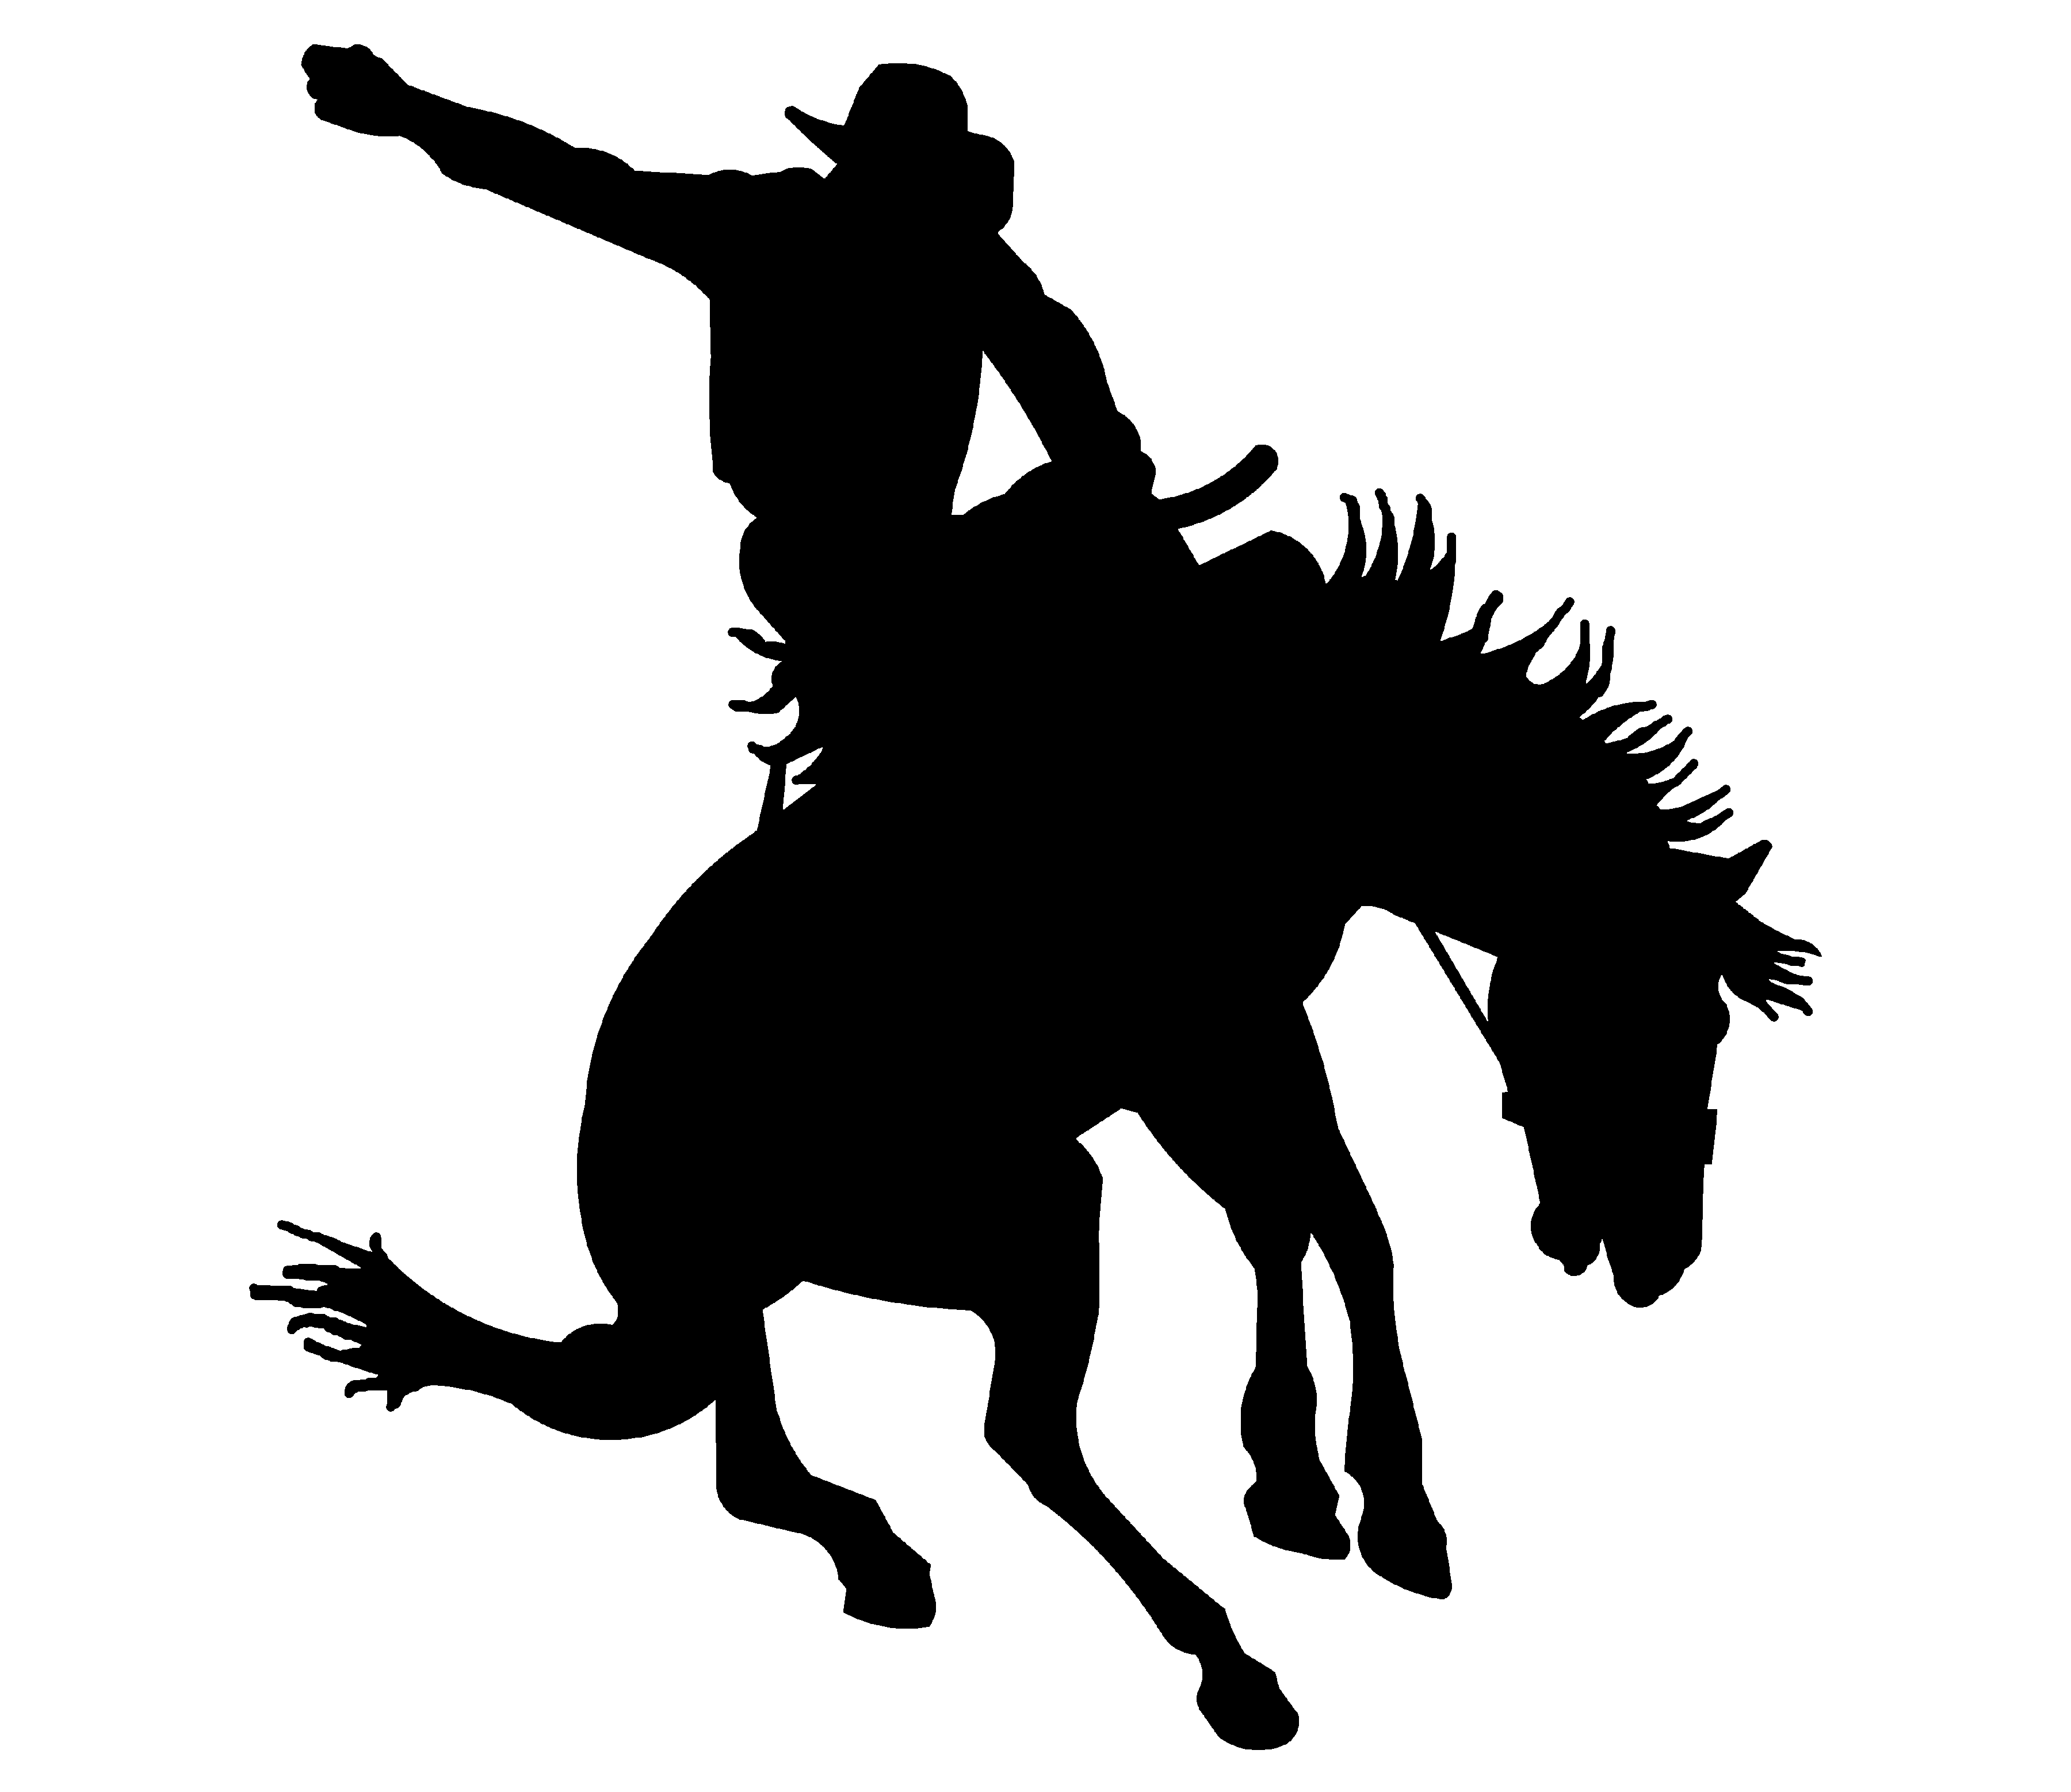 Free clipart rodeo banner library download Rodeo PNG HD Free Transparent Rodeo HD.PNG Images.   PlusPNG banner library download